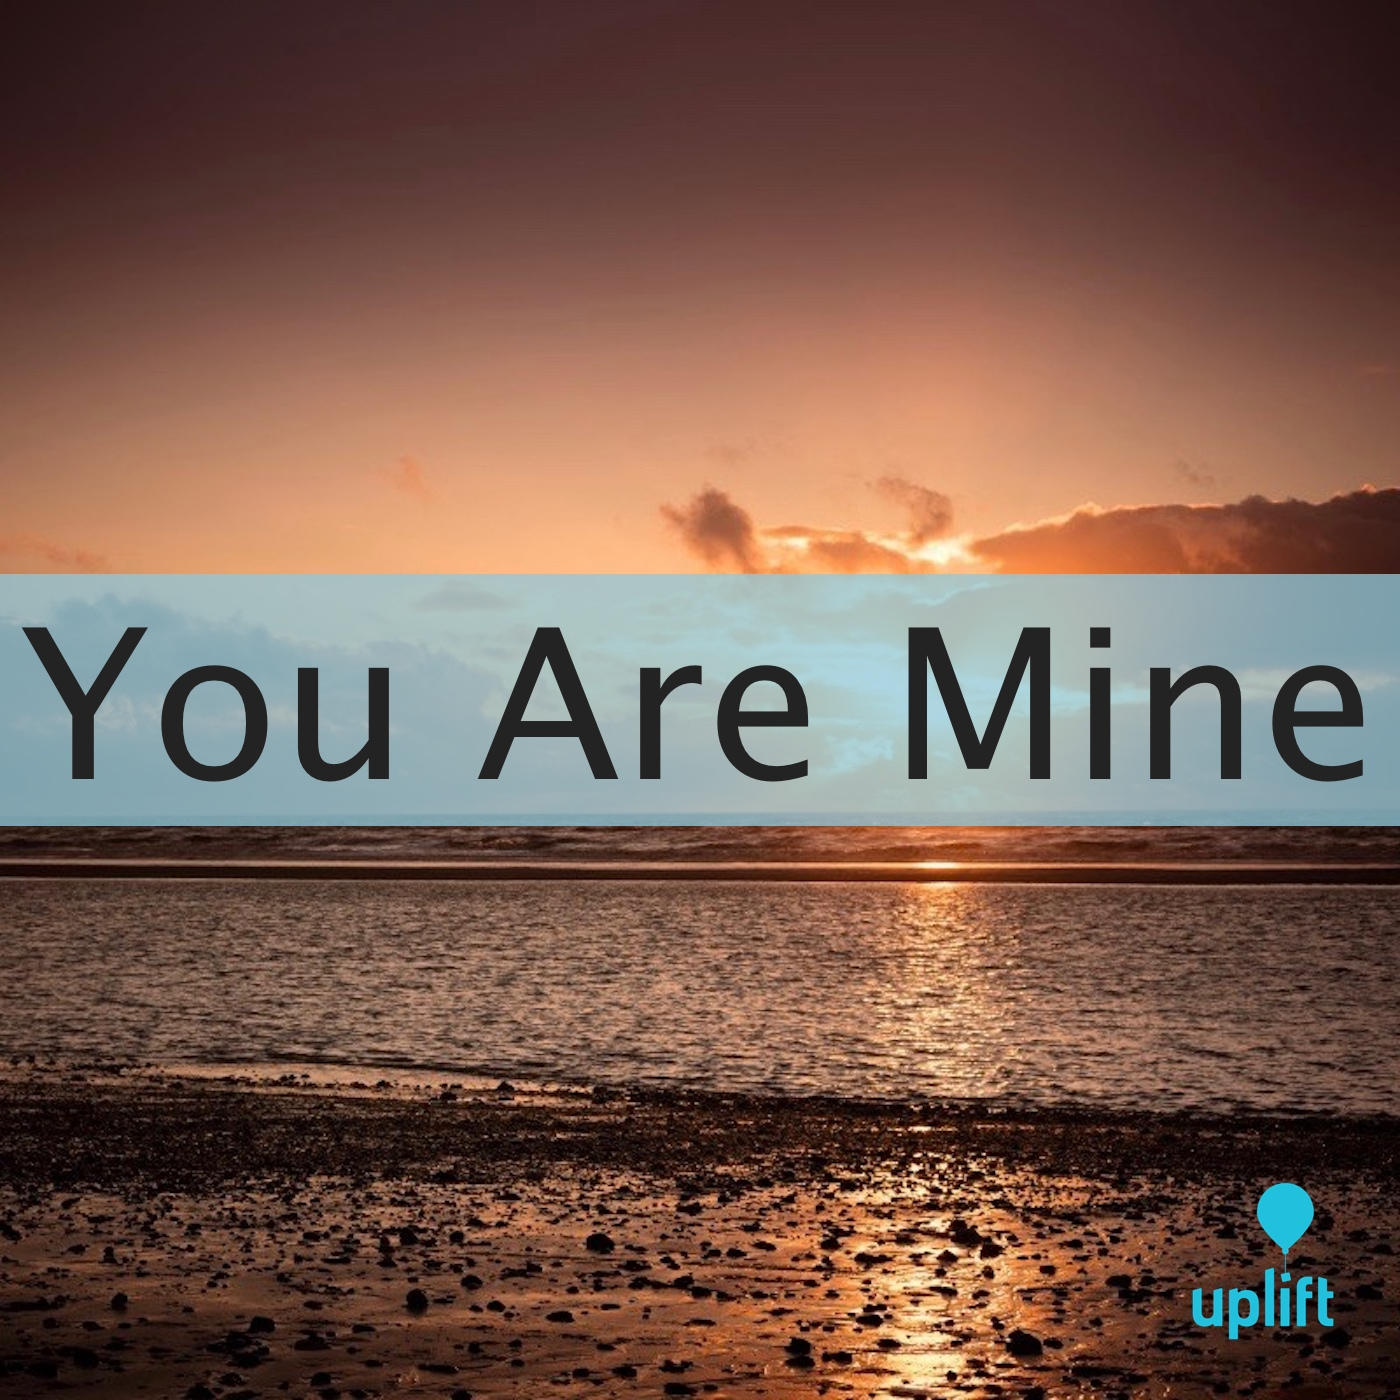 Episode 105: You Are Mine